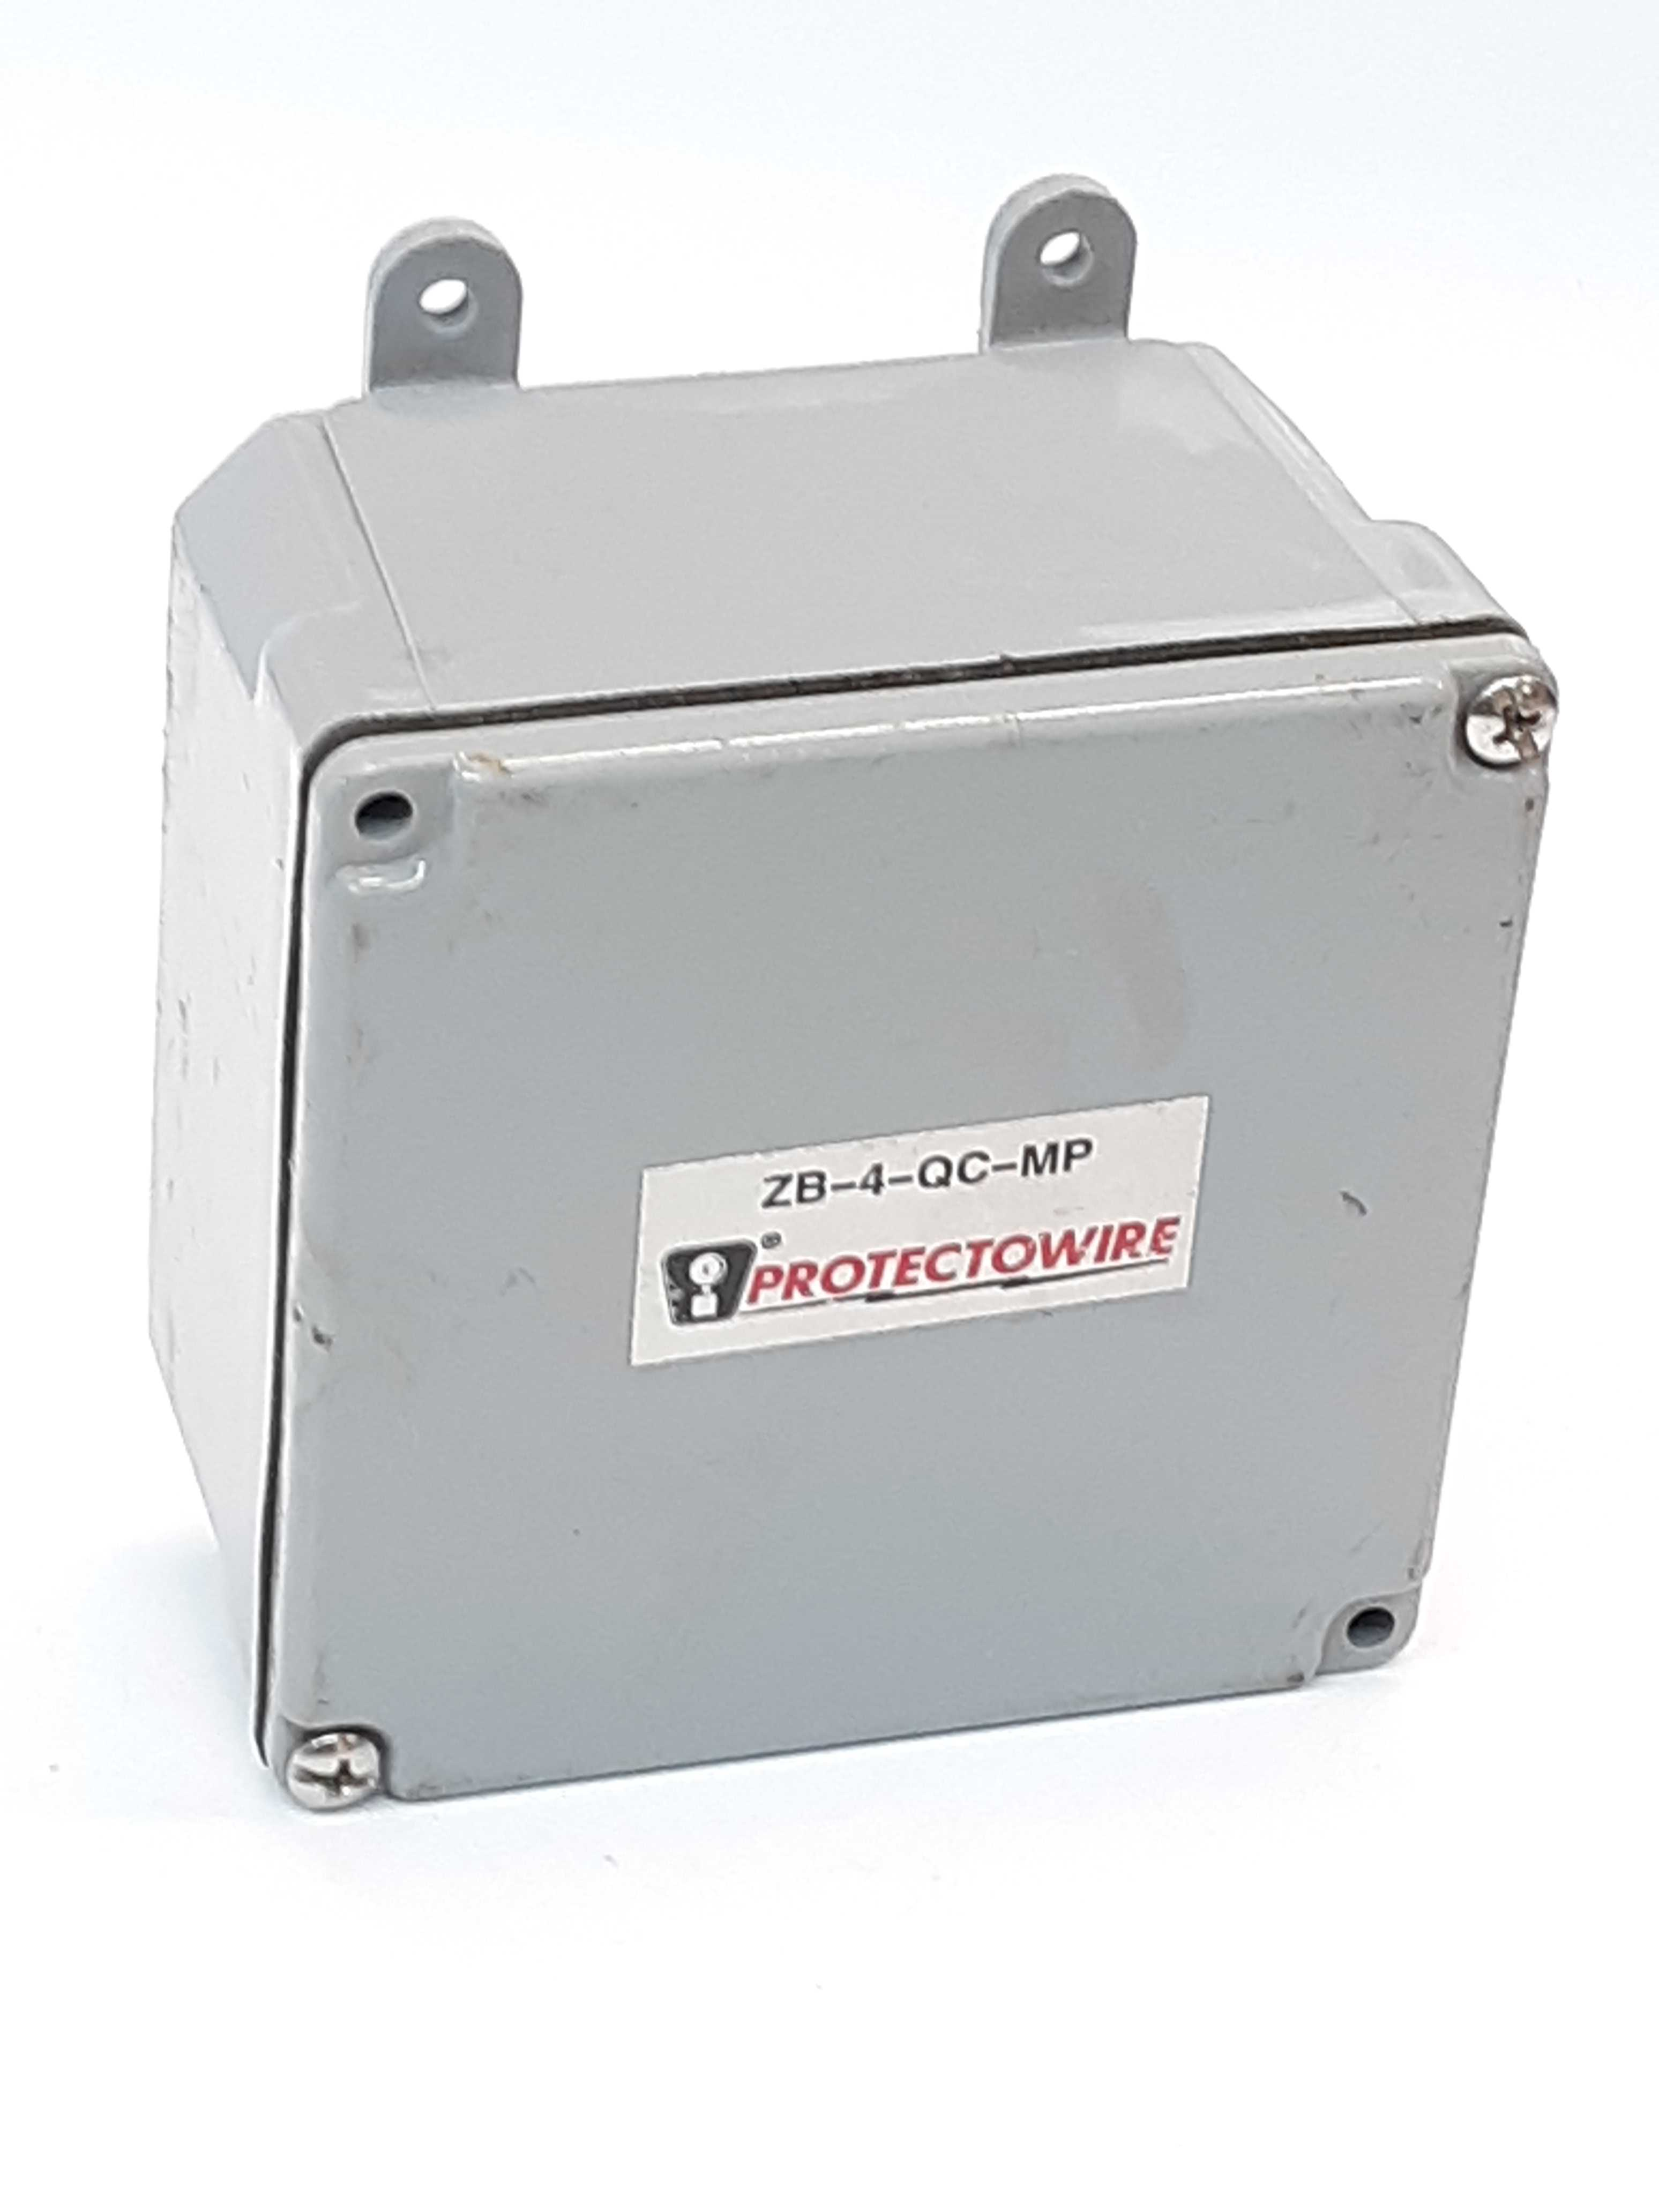 Protectowire ZB-4-QC-MP  Junction Box Enclosure